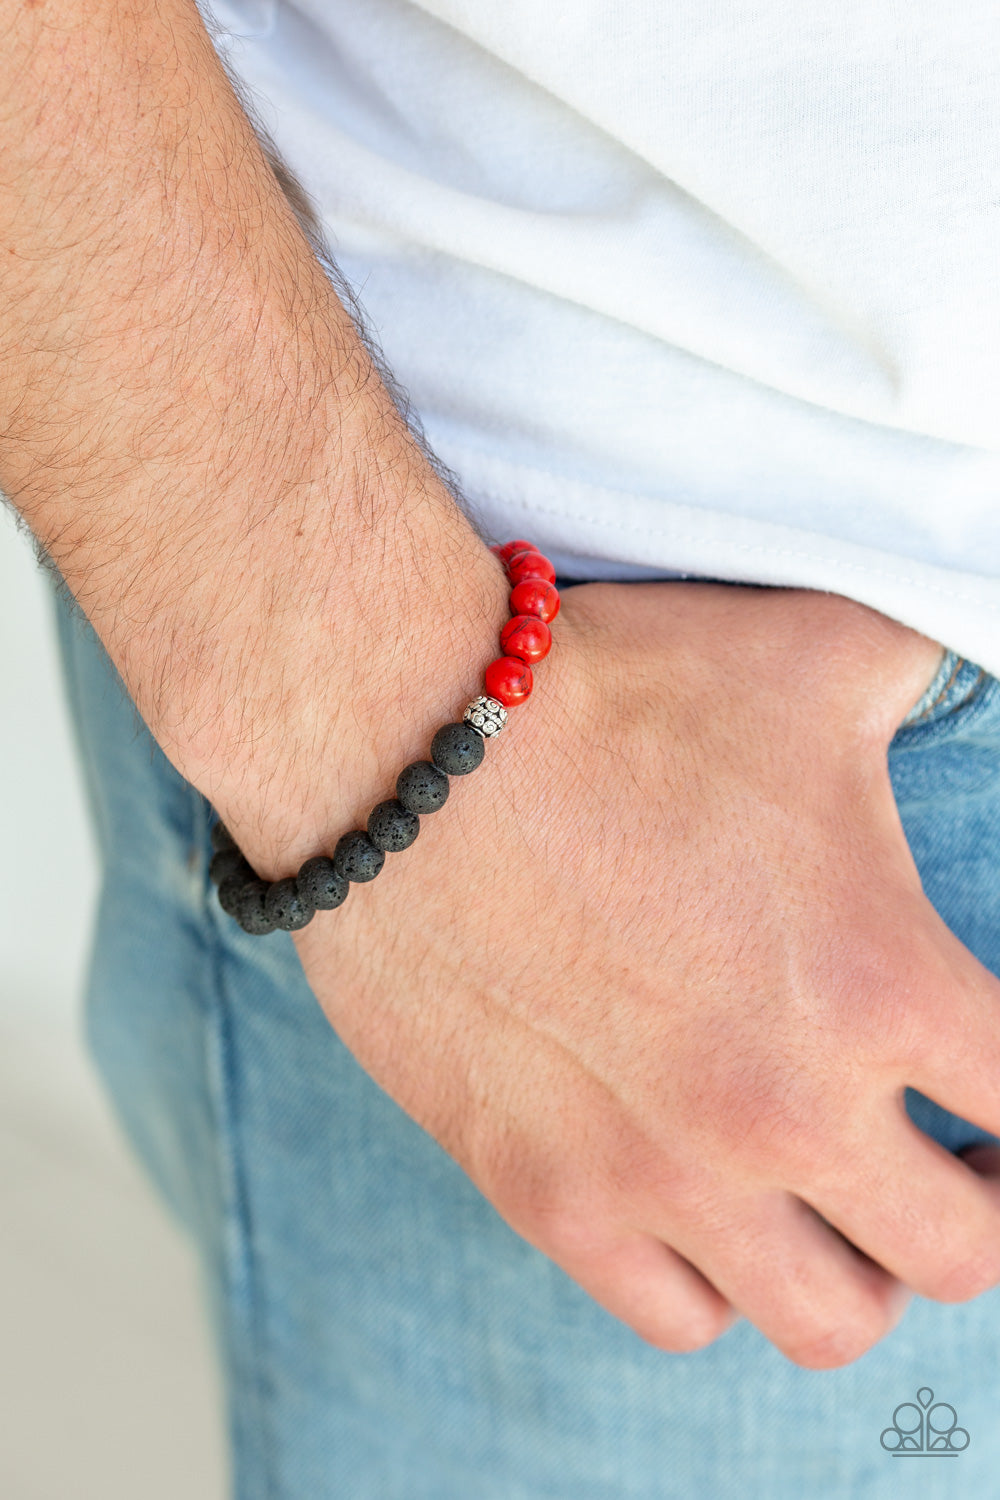 Fortune - Red Beads and Black Lava Beads Bracelet